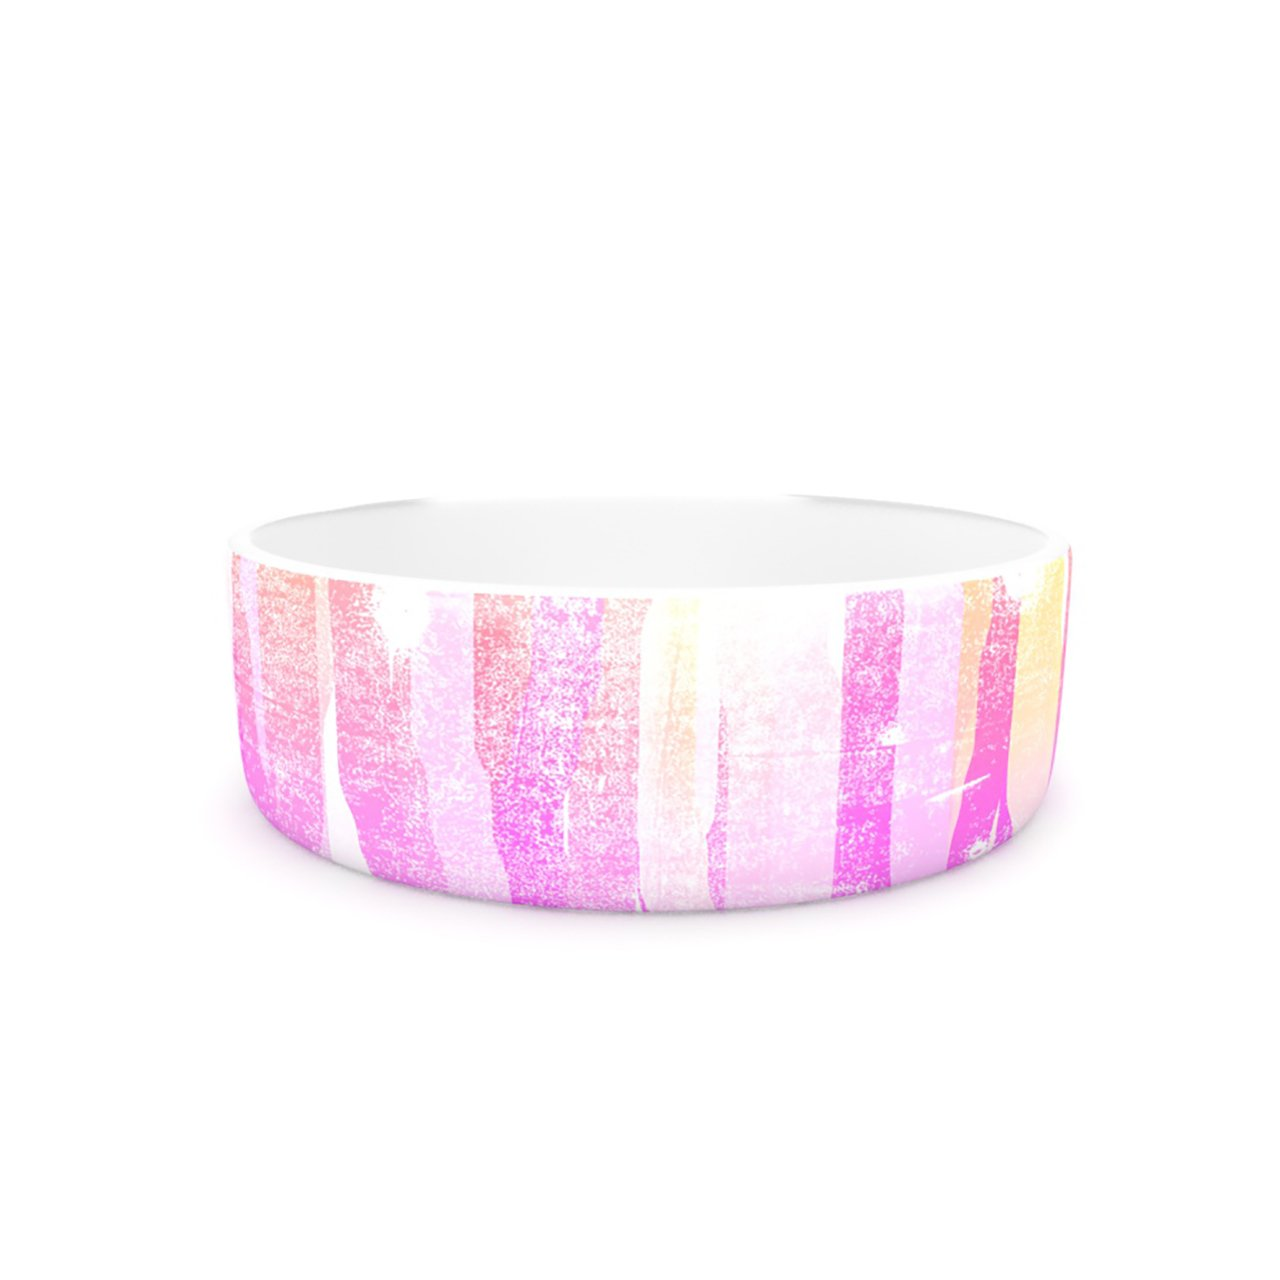 Kess InHouse Frederic Levy-Hadida Jungle Stripes Pink  Pet Bowl, 7-Inch, Yellow Painting